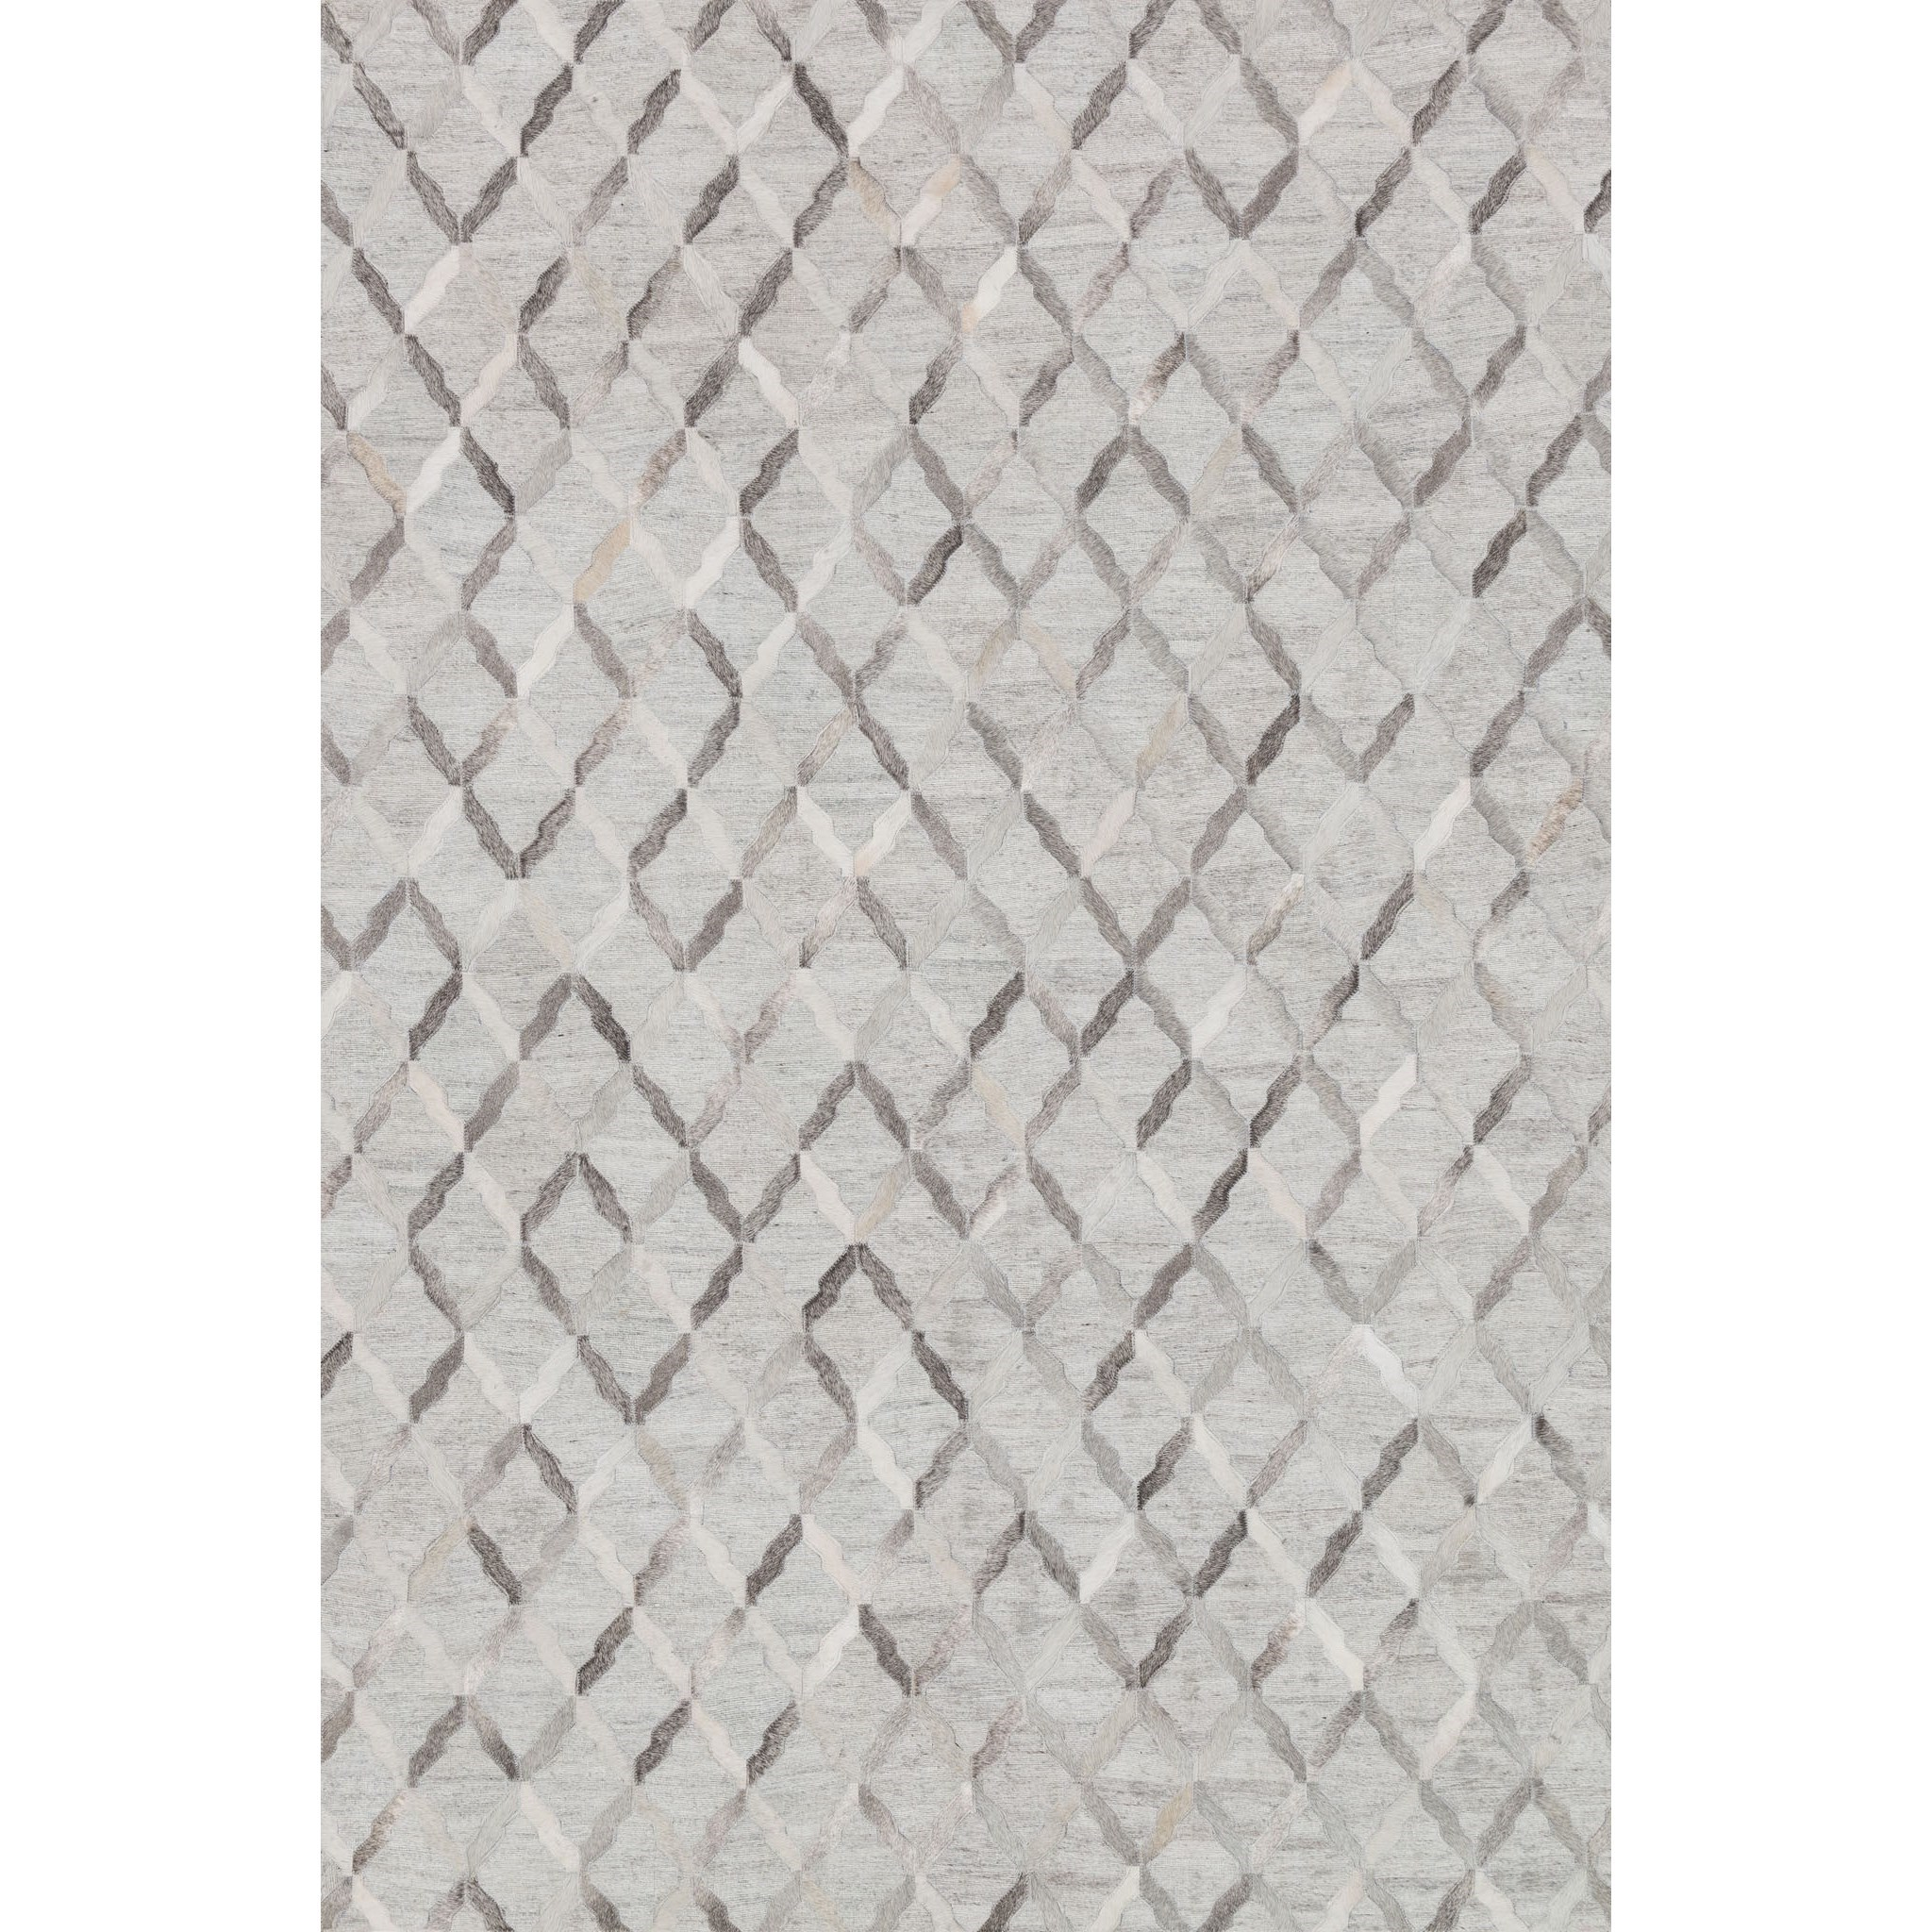 "Dorado 7'-9"" x 9'-9"" Area Rug by Loloi Rugs at Belfort Furniture"